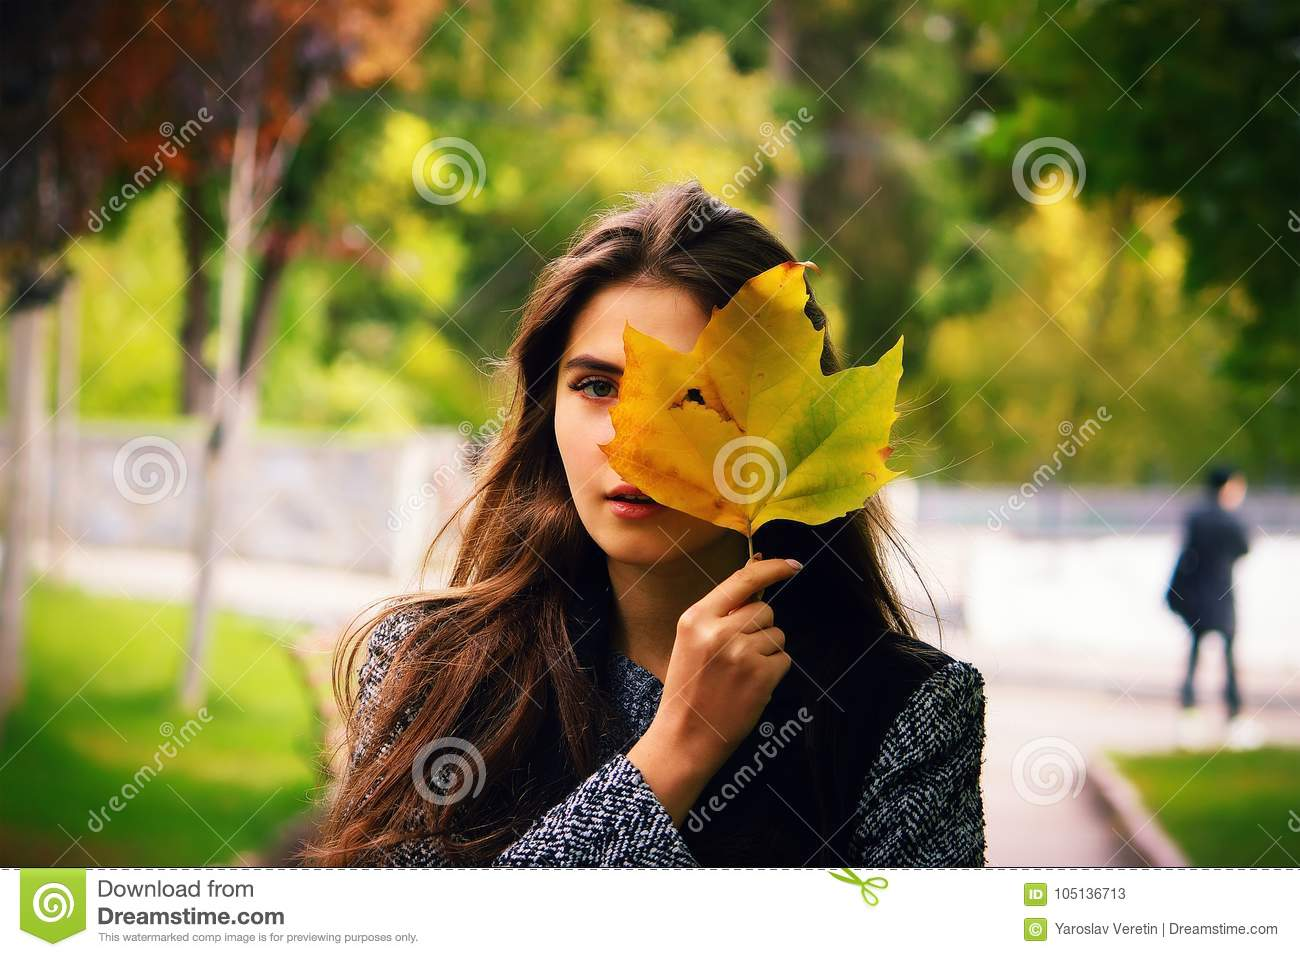 Girl holding yellow leaf, looking through hole autumn background